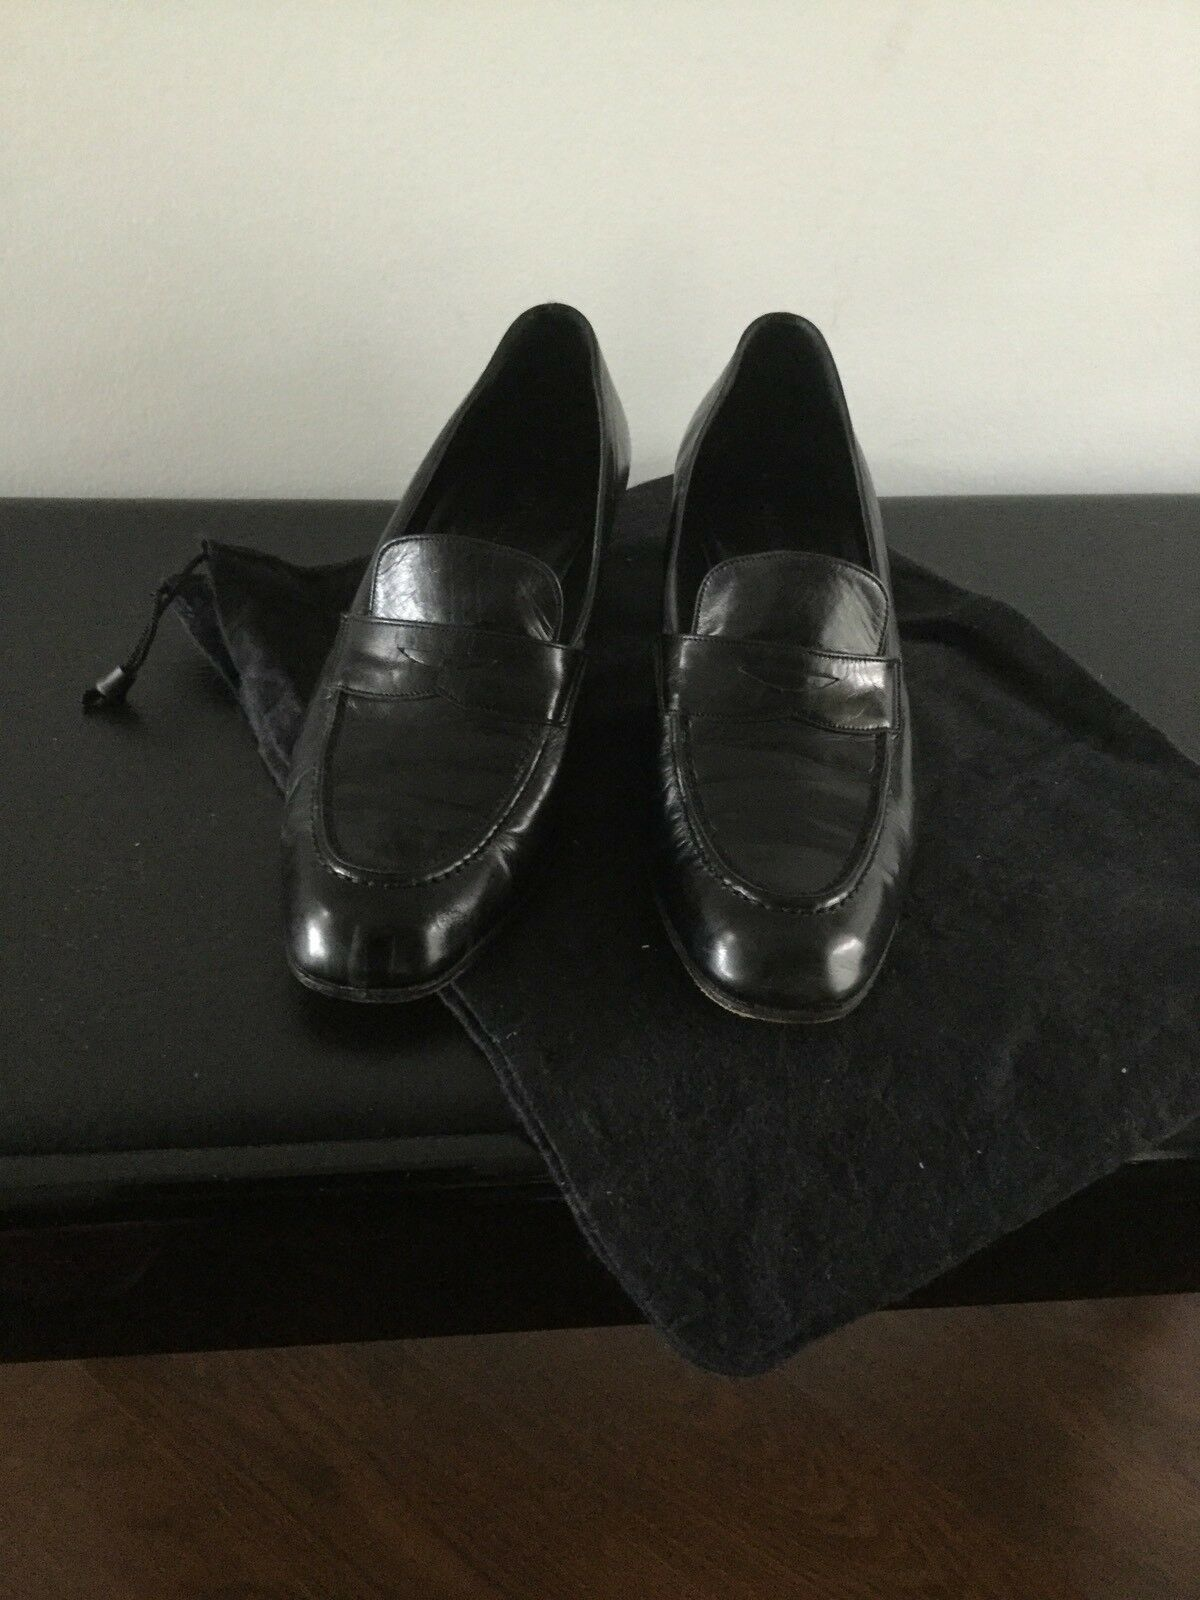 Jill Sander Women's Leather shoes Size 8.5